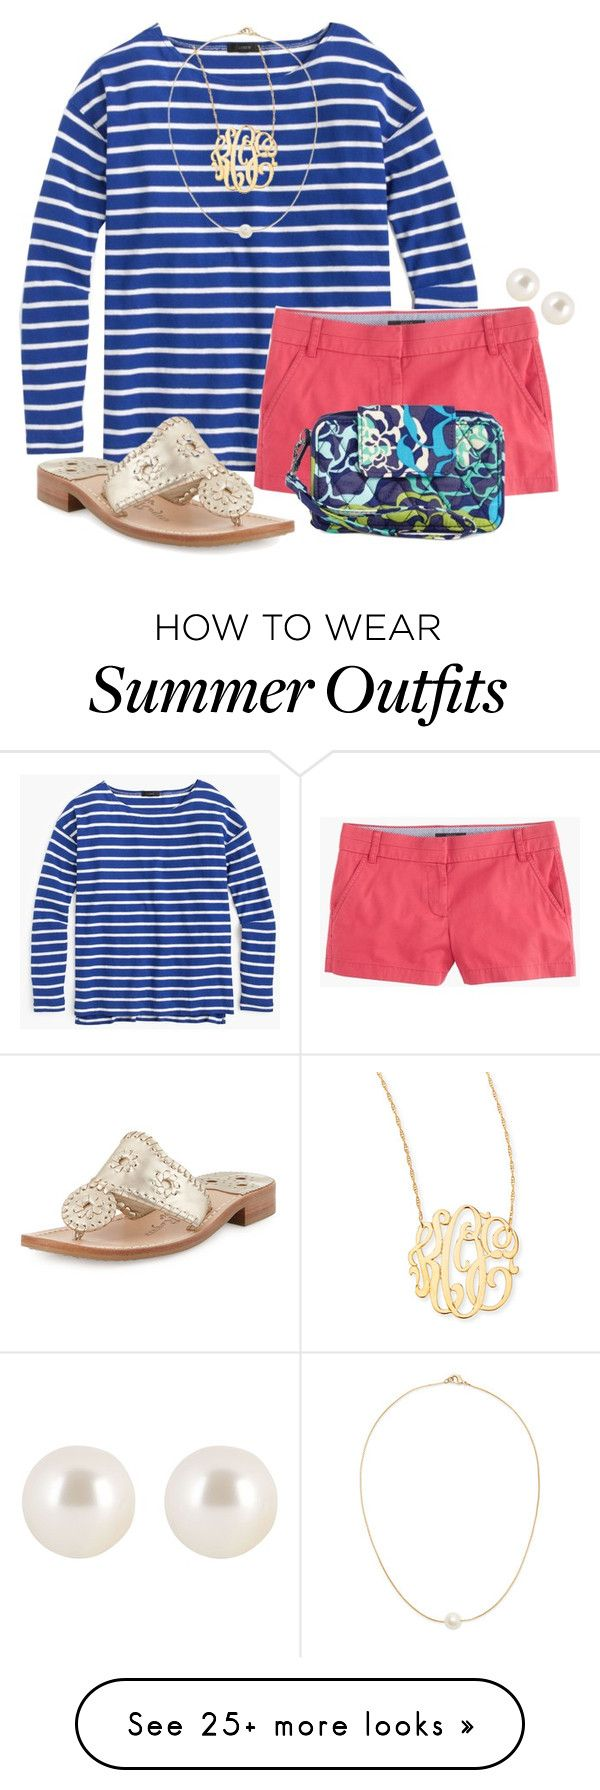 """Summer Outfit! ❤️"" by olivia73001 on Polyvore featuring J.Crew, Jack Rogers, Sole Society, Jennifer Zeuner, Vera Bradley and Henri Bendel"